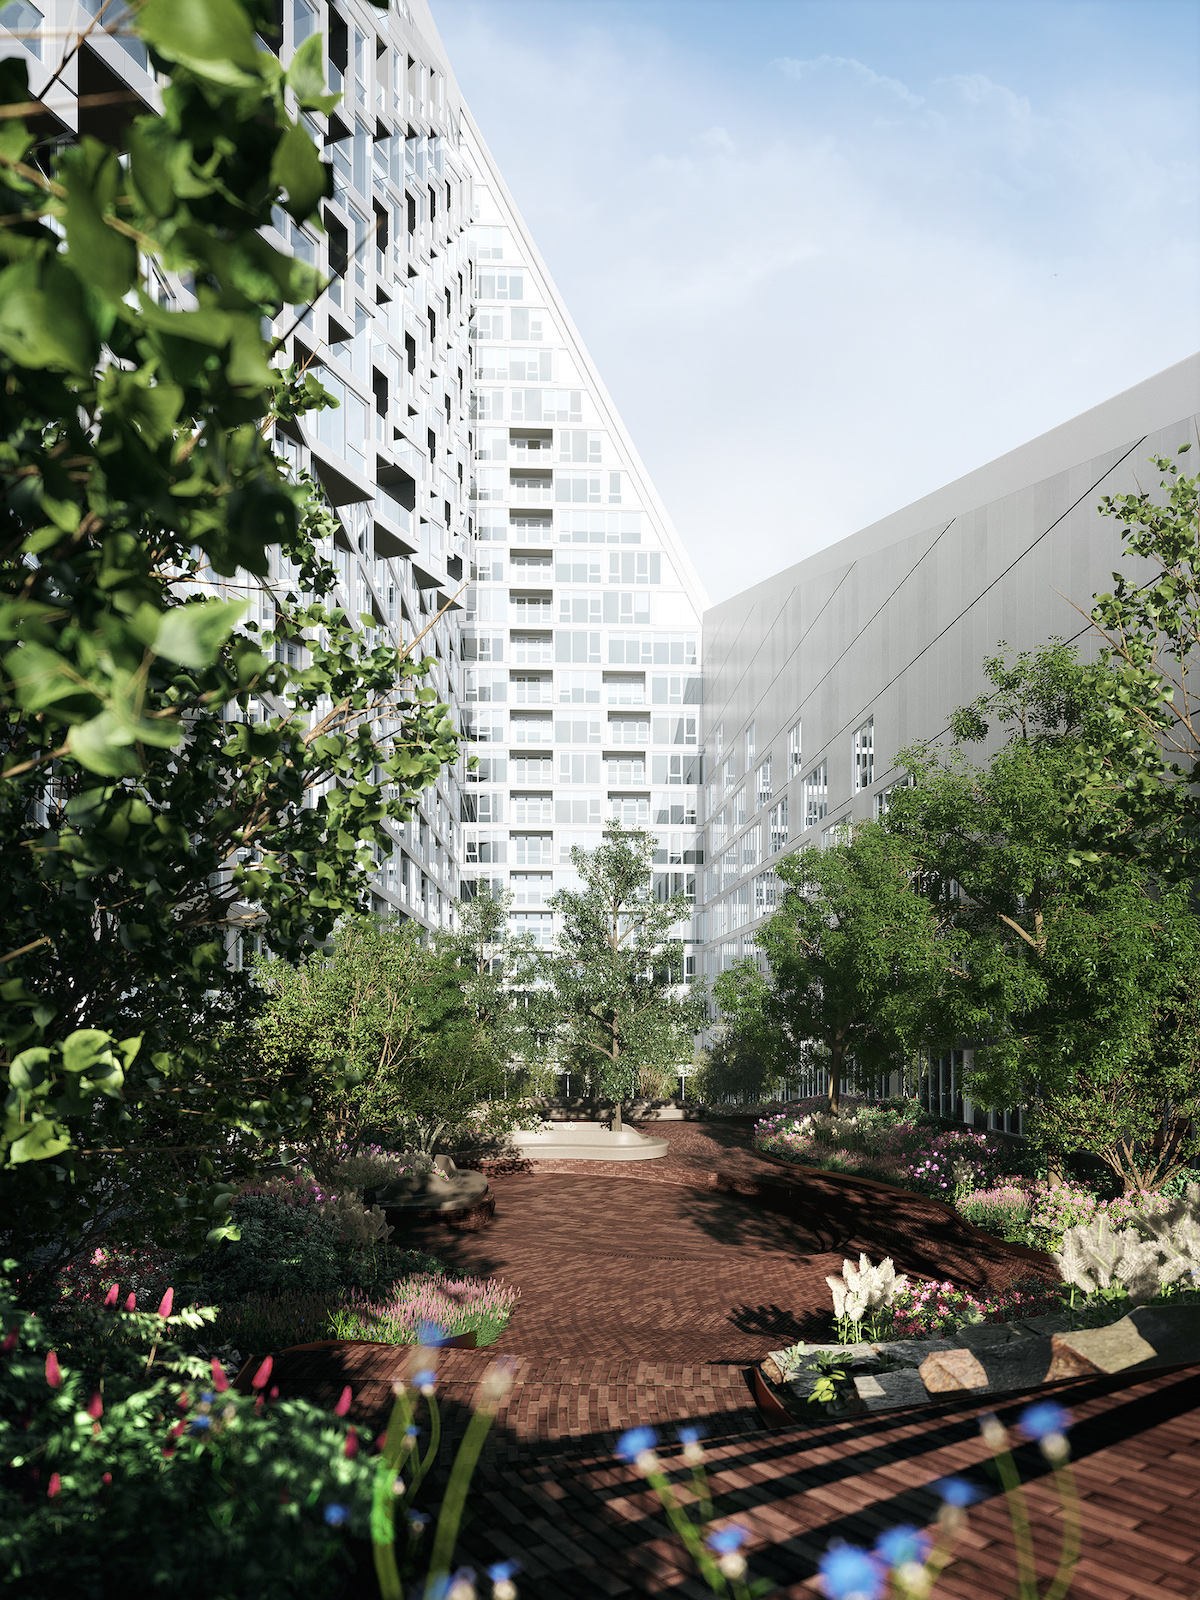 The courtyard of 625 West 57th Street, rendering courtesy of Durst Organization